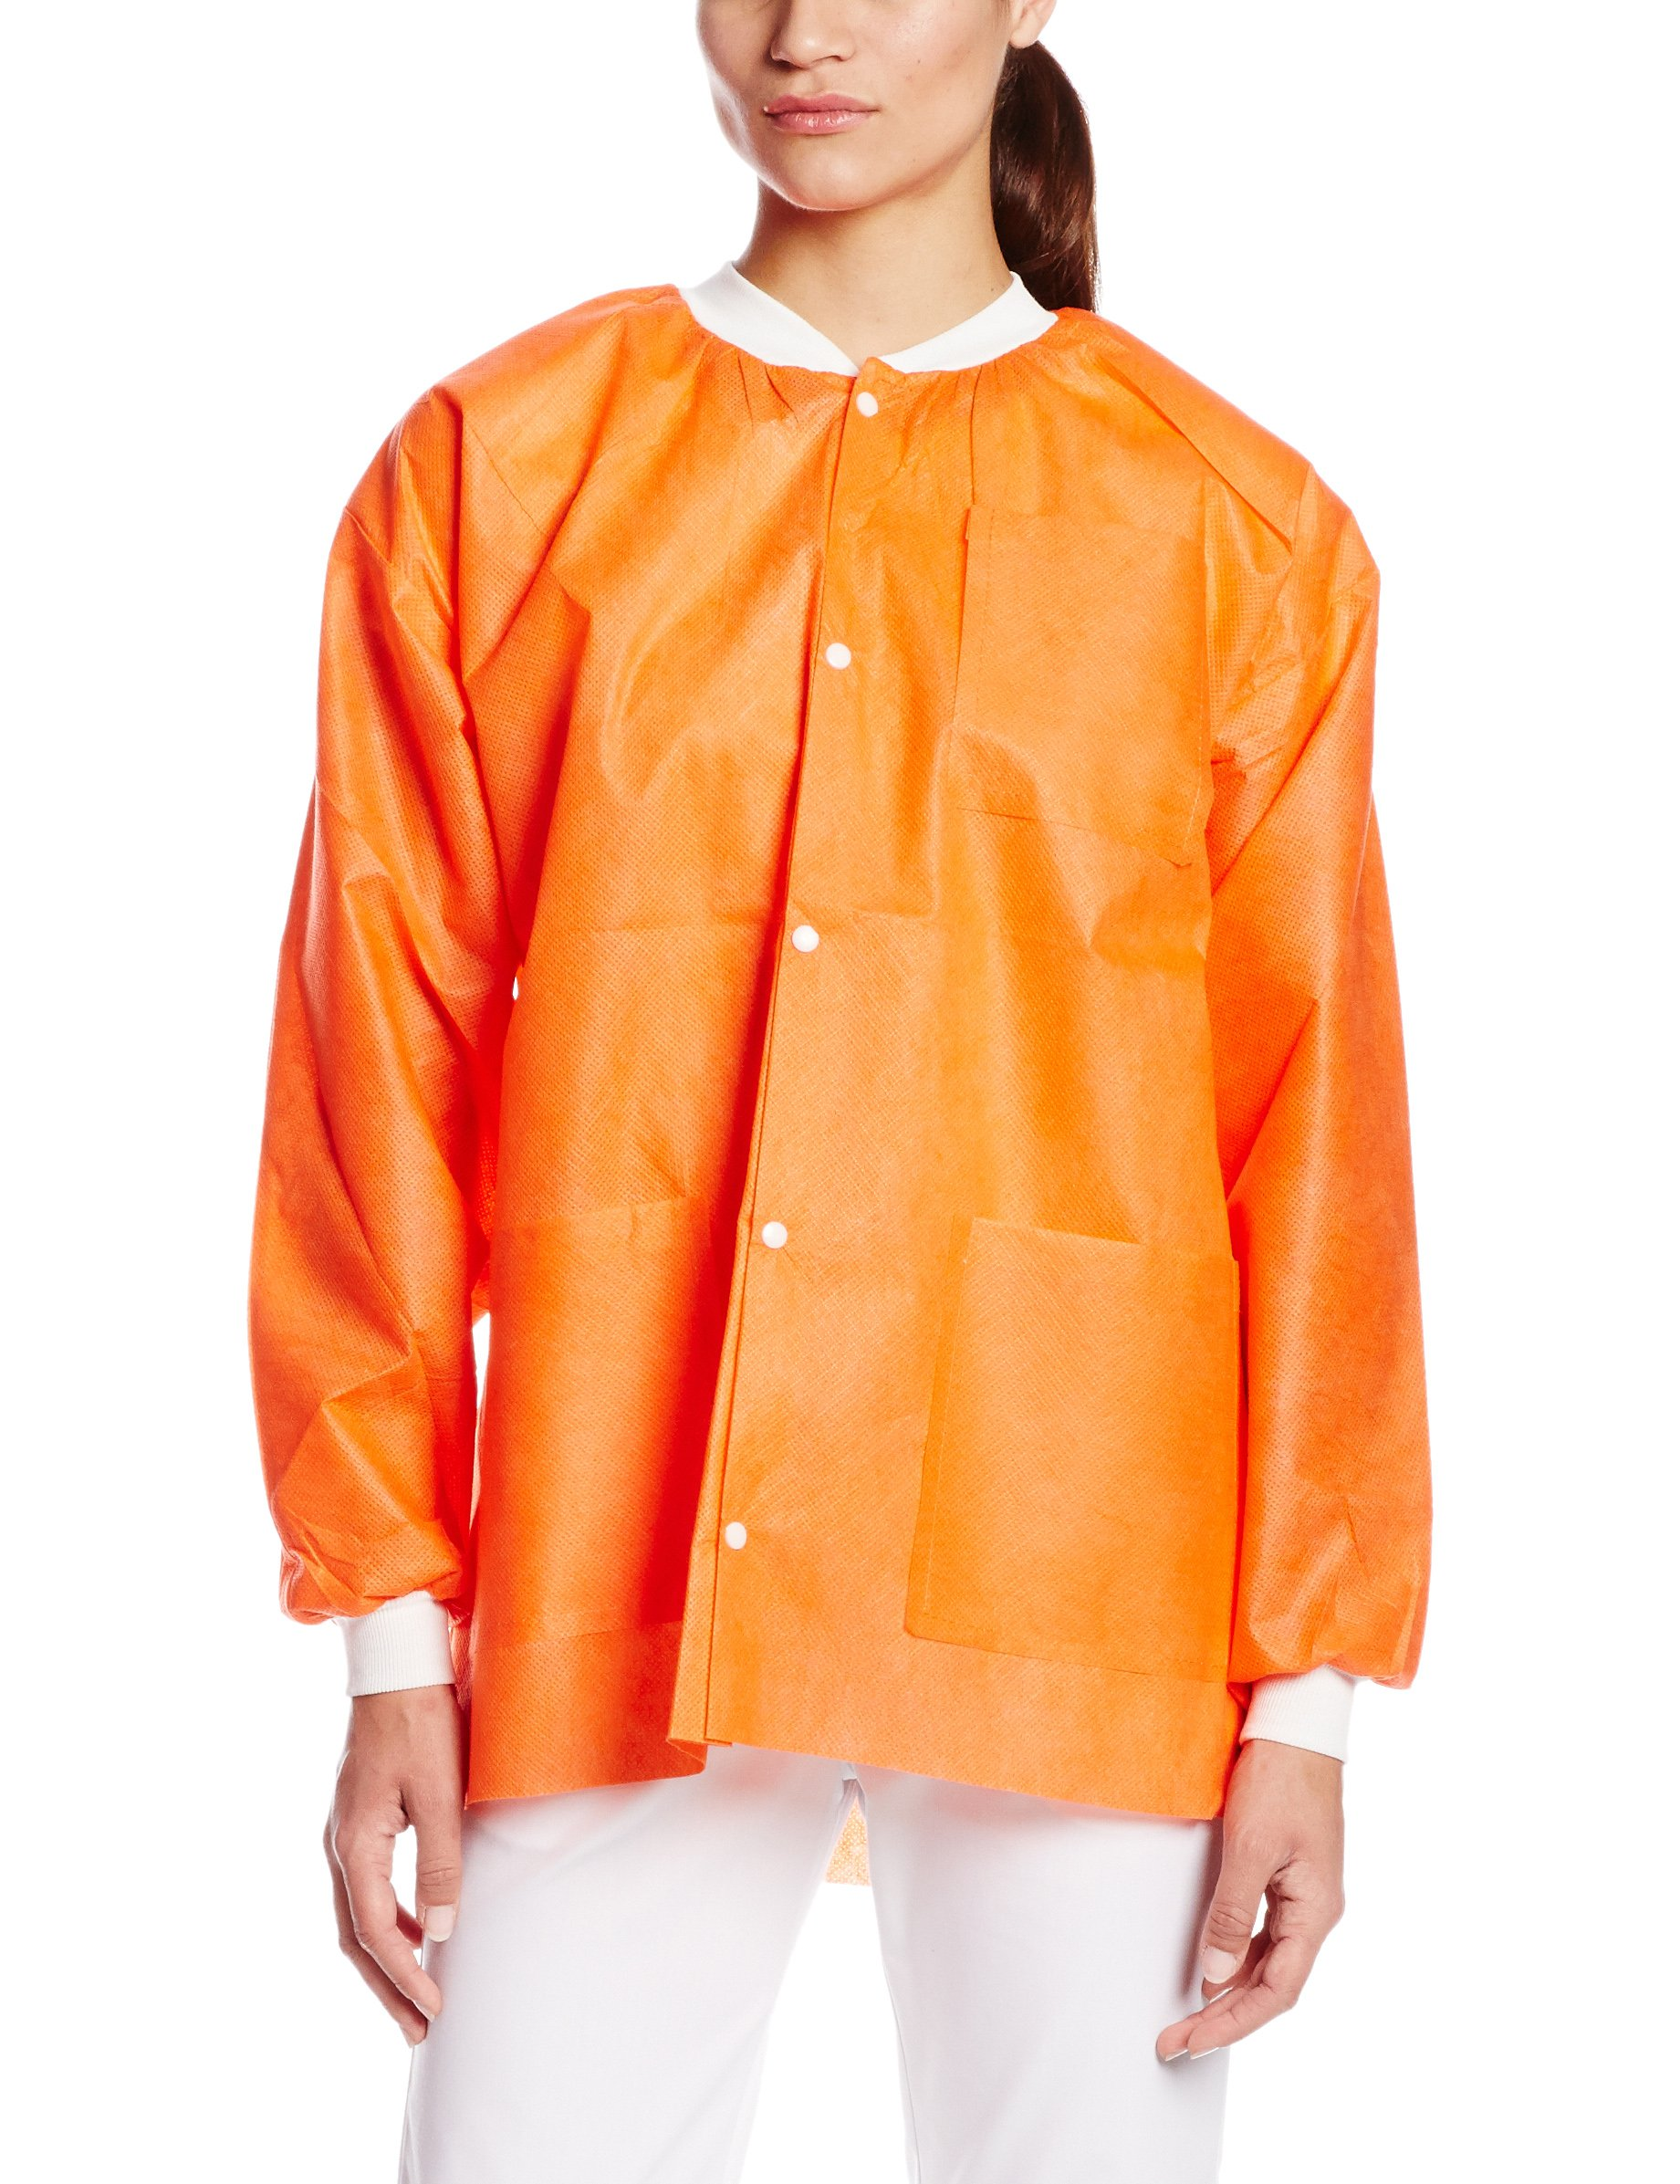 ValuMax 3630ORXL Extra-Safe, Wrinkle-Free, Noble Looking Disposable SMS Hip Length Jacket, Orange, XL, Pack of 10 by Valumax (Image #1)